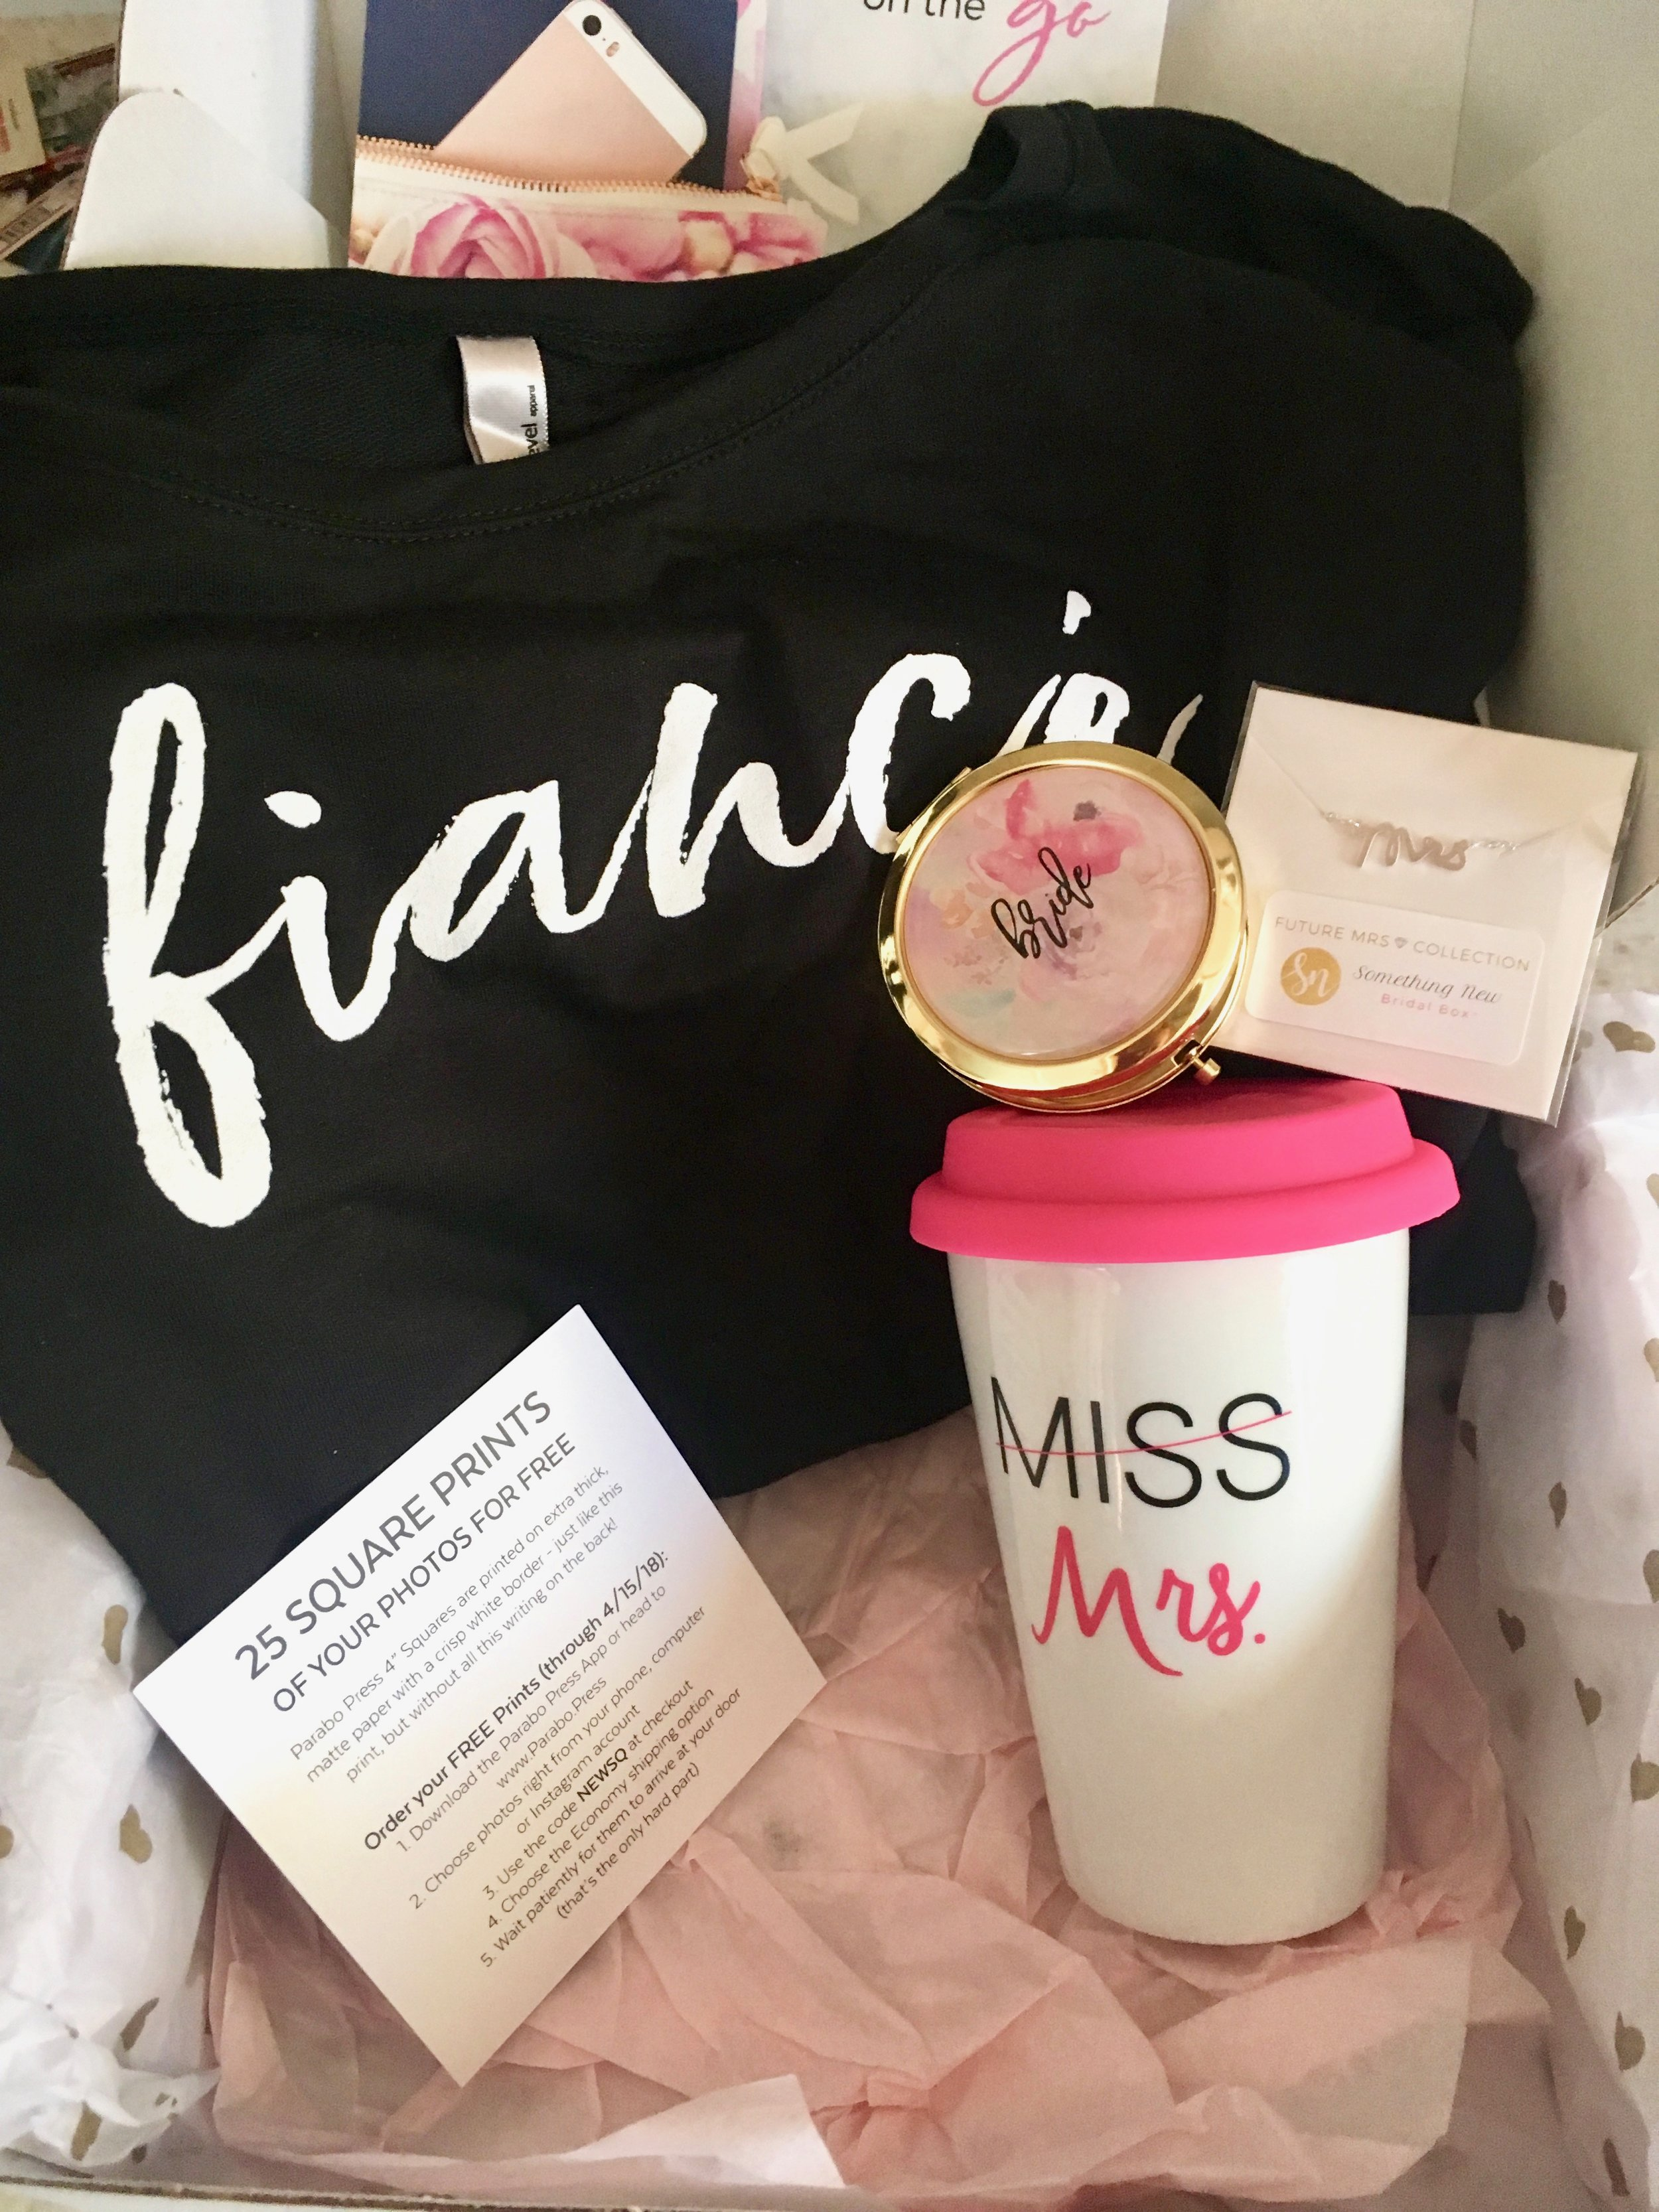 Best Bridal Box Subscription - Newly Engaged Gifts